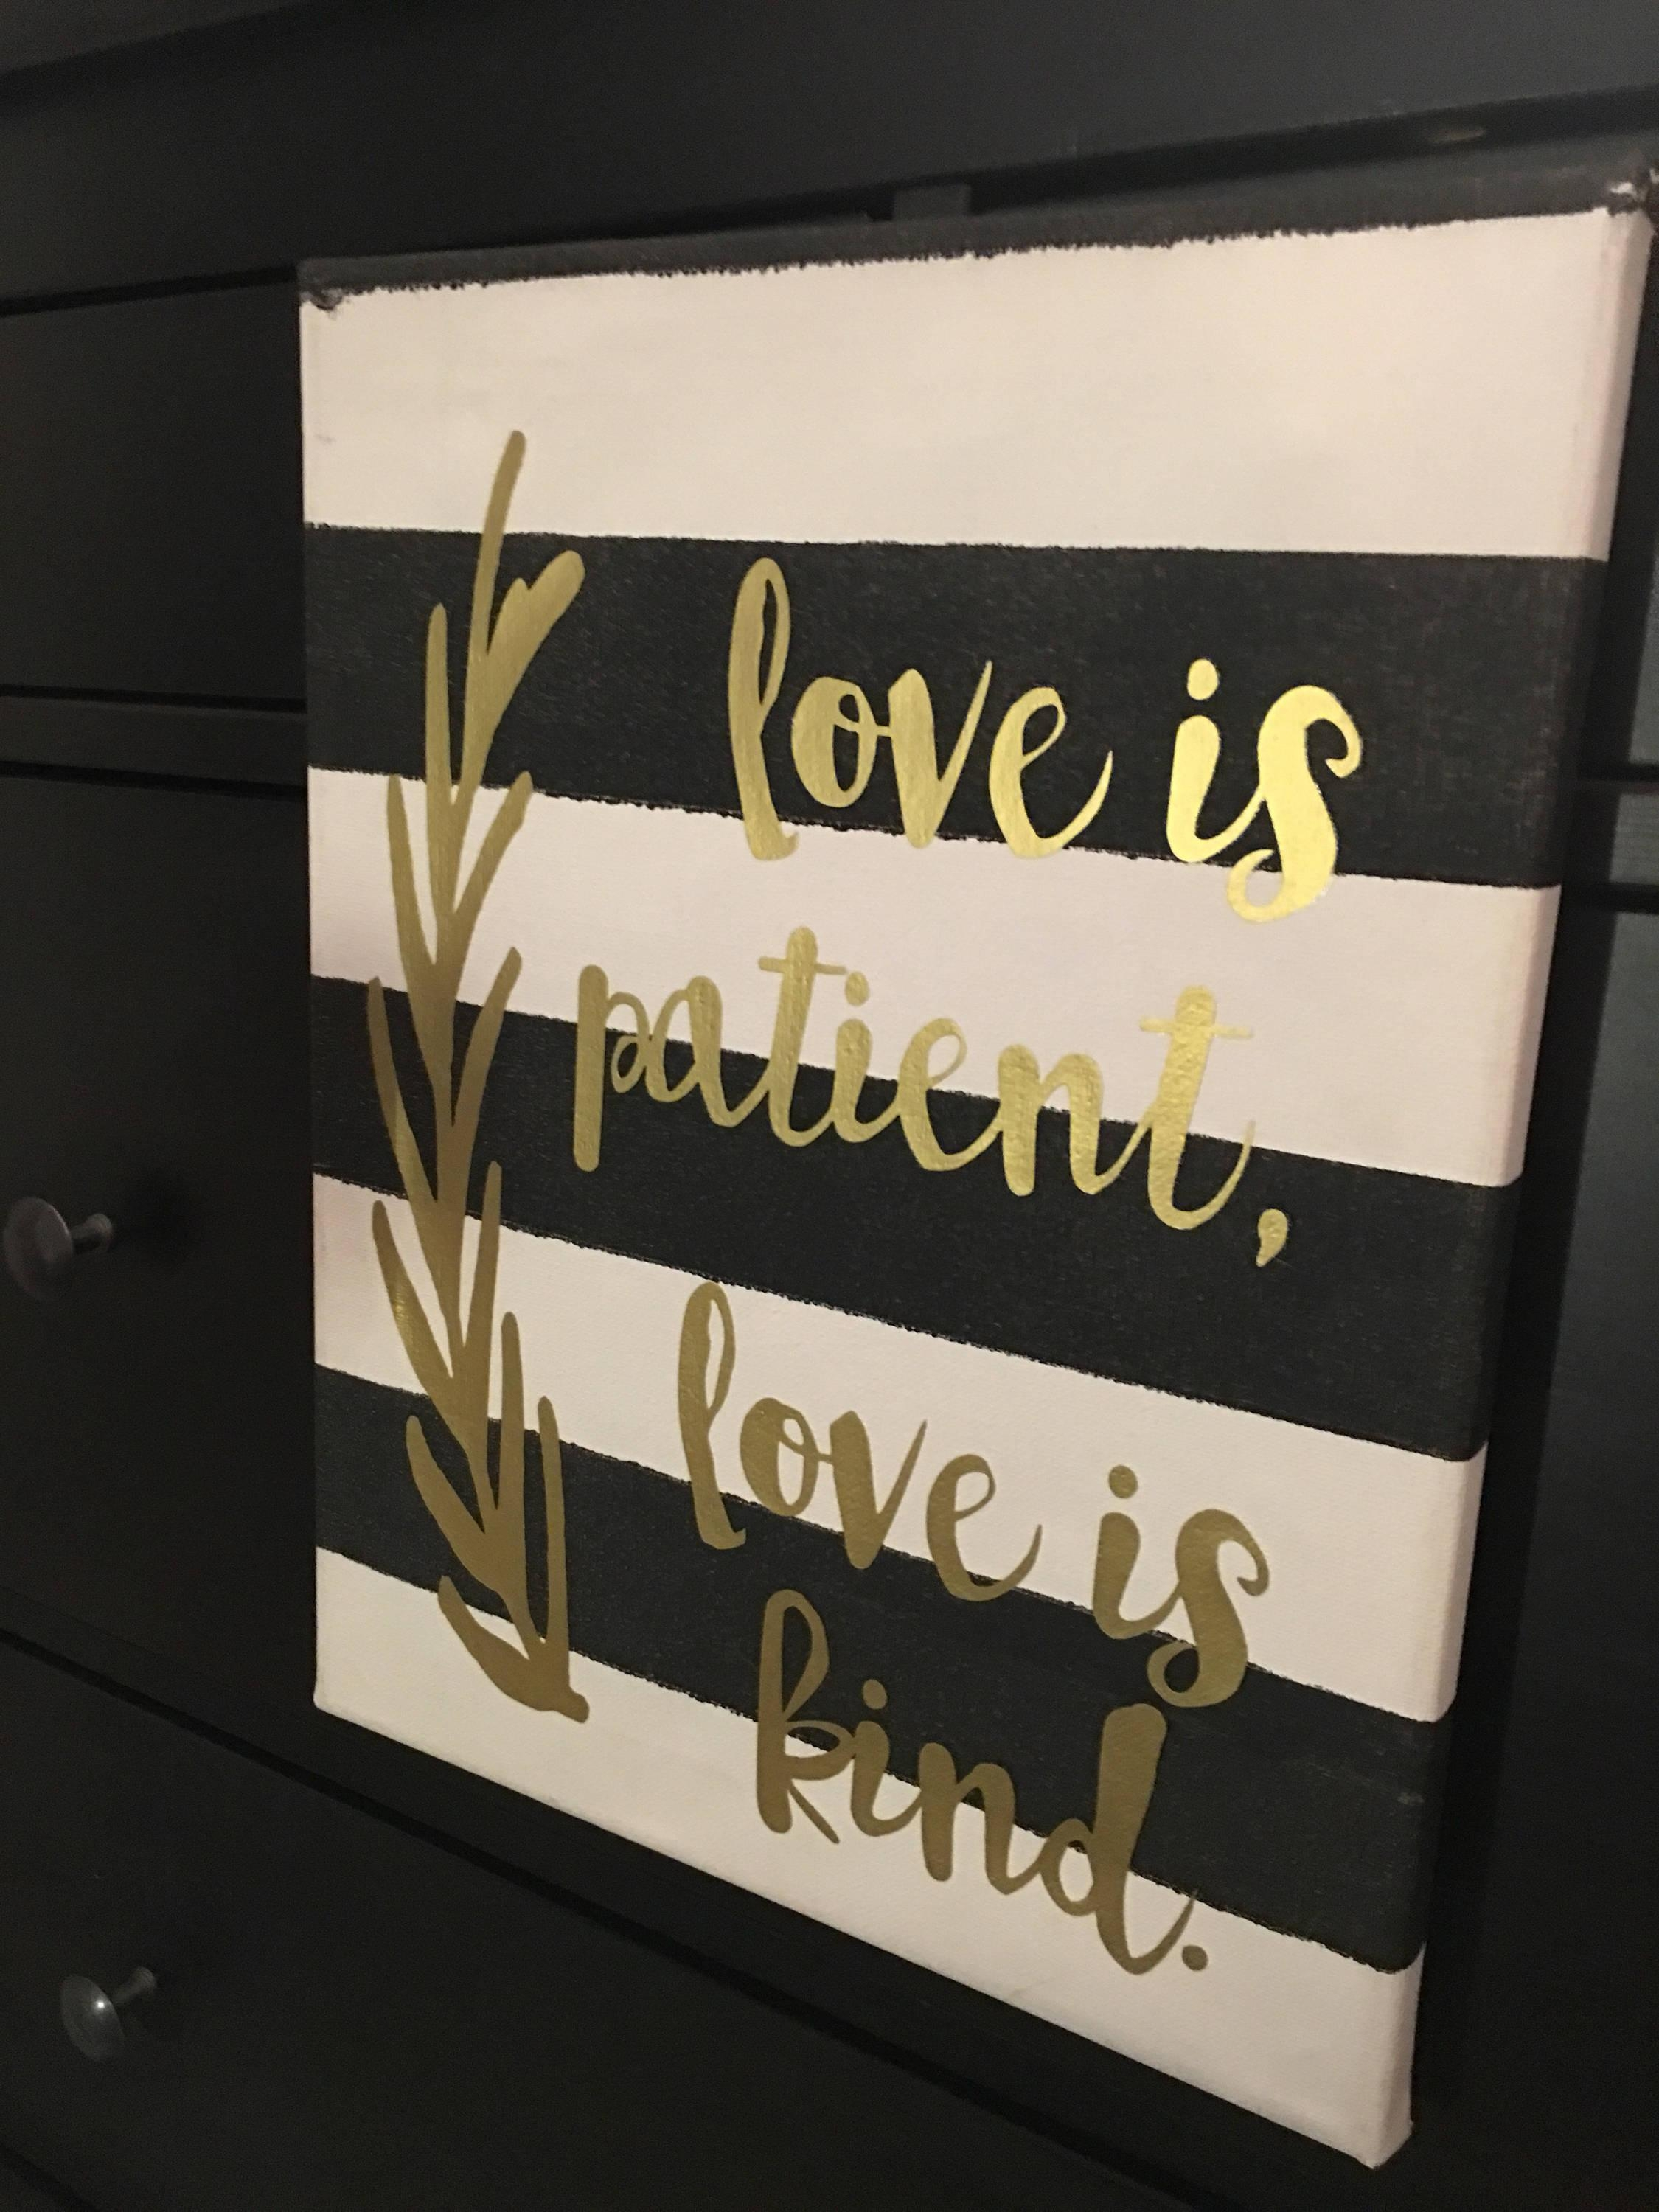 Love Is Patient, Love Is Kind Canvas Wall Art, 1 Corinthians 13 Throughout 1 Corinthians 13 Wall Art (Image 13 of 20)